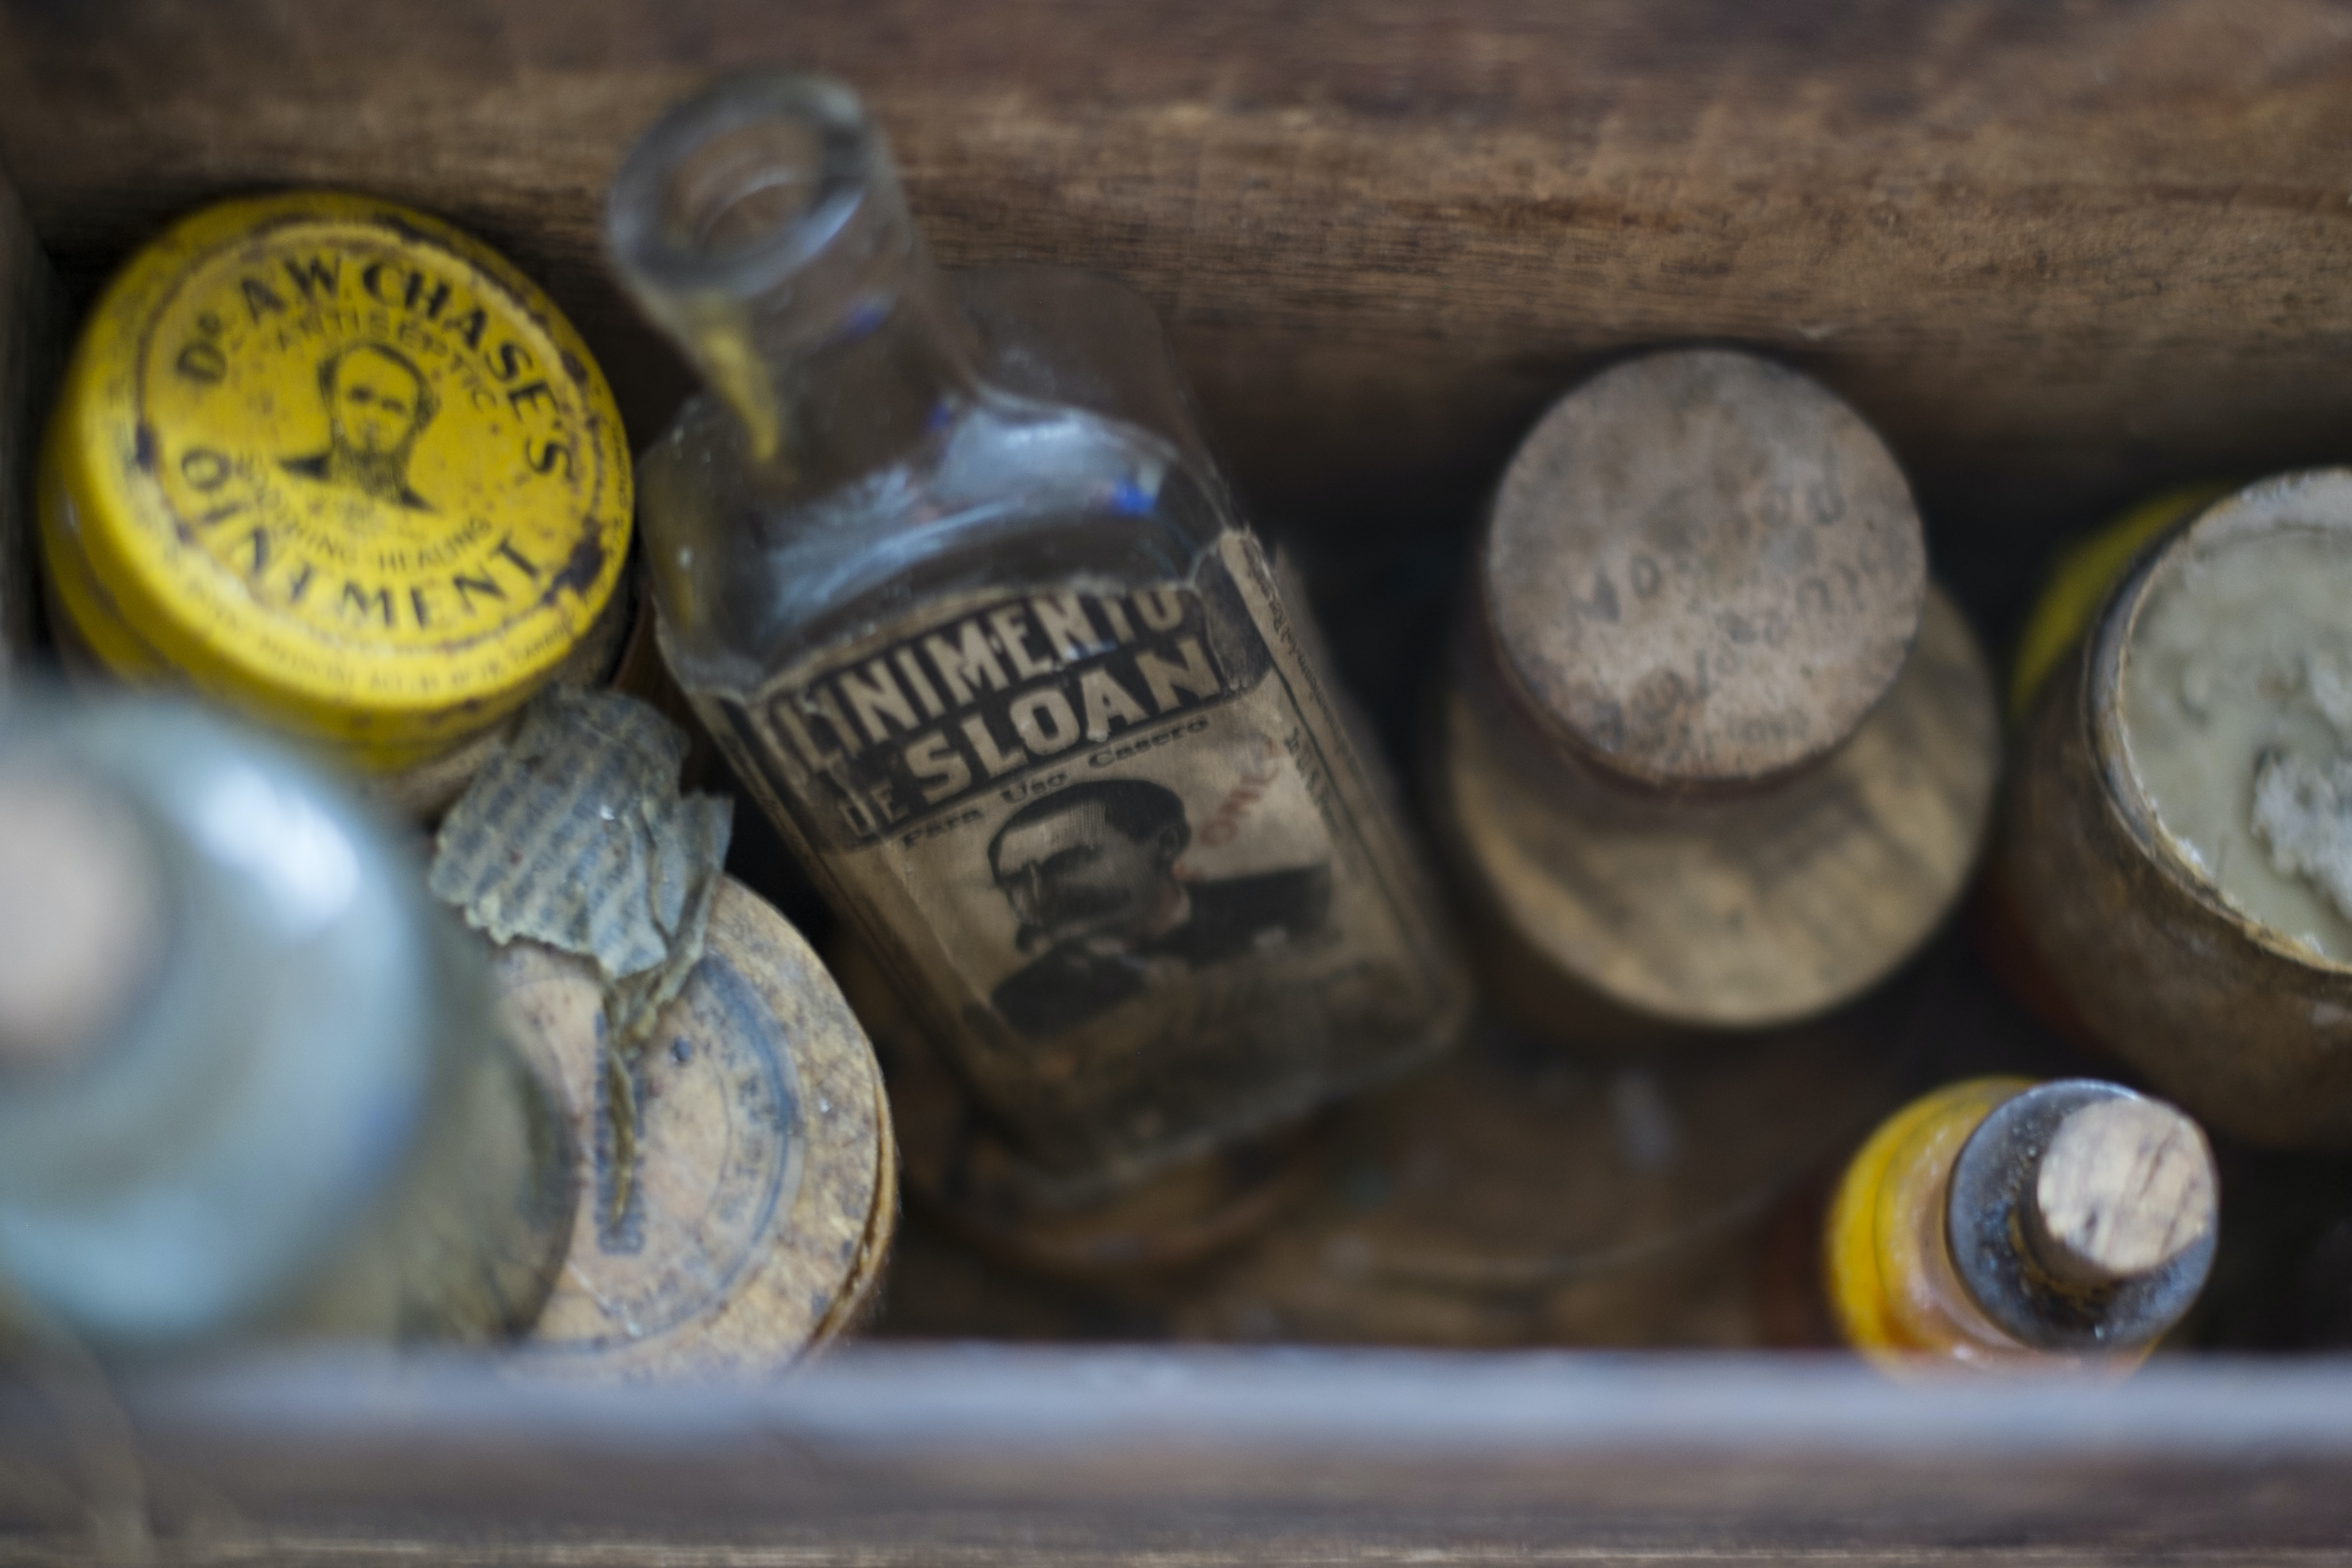 A wooden box filled with vintage medicinal jars and containers